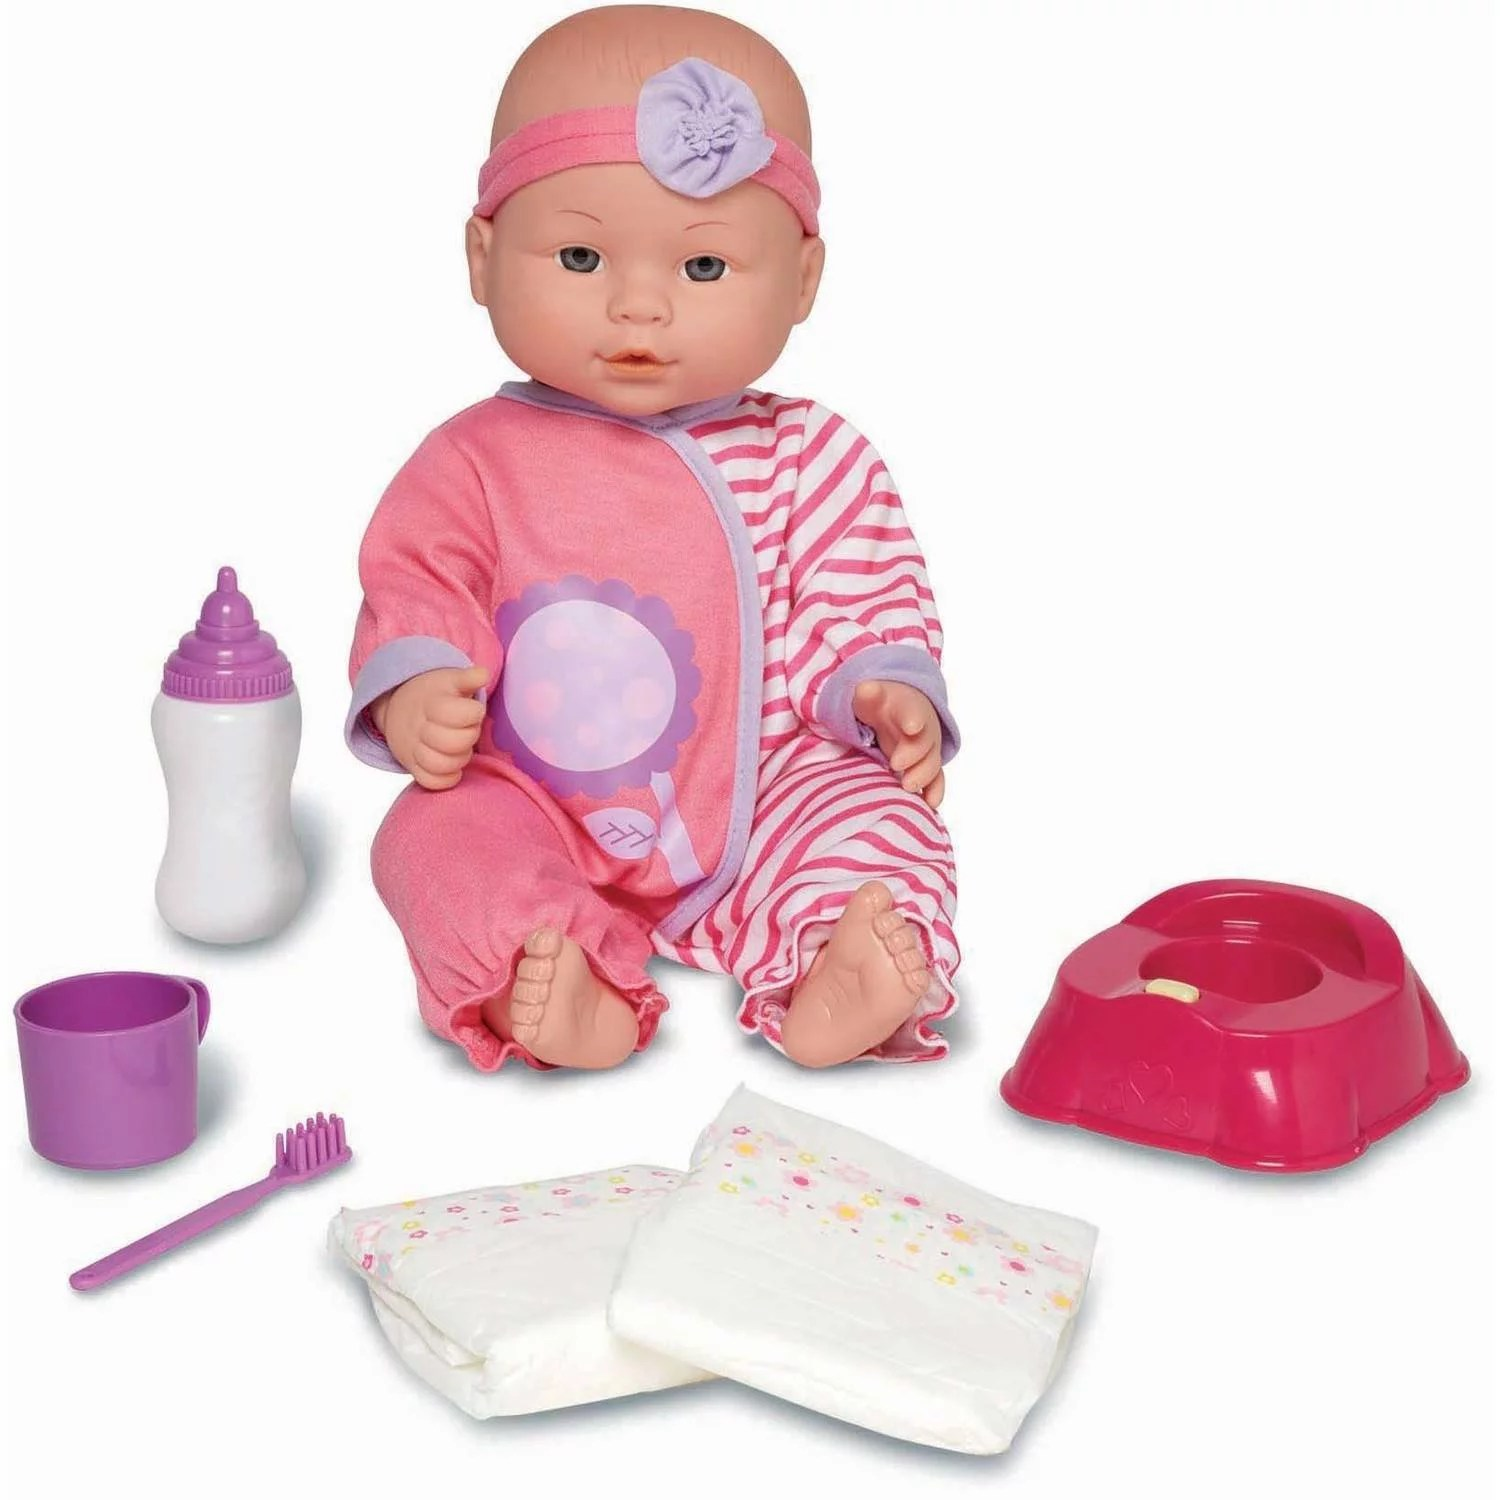 Bad Set For Baby My Sweet Love Baby Doll Potty Time Set Caucasian